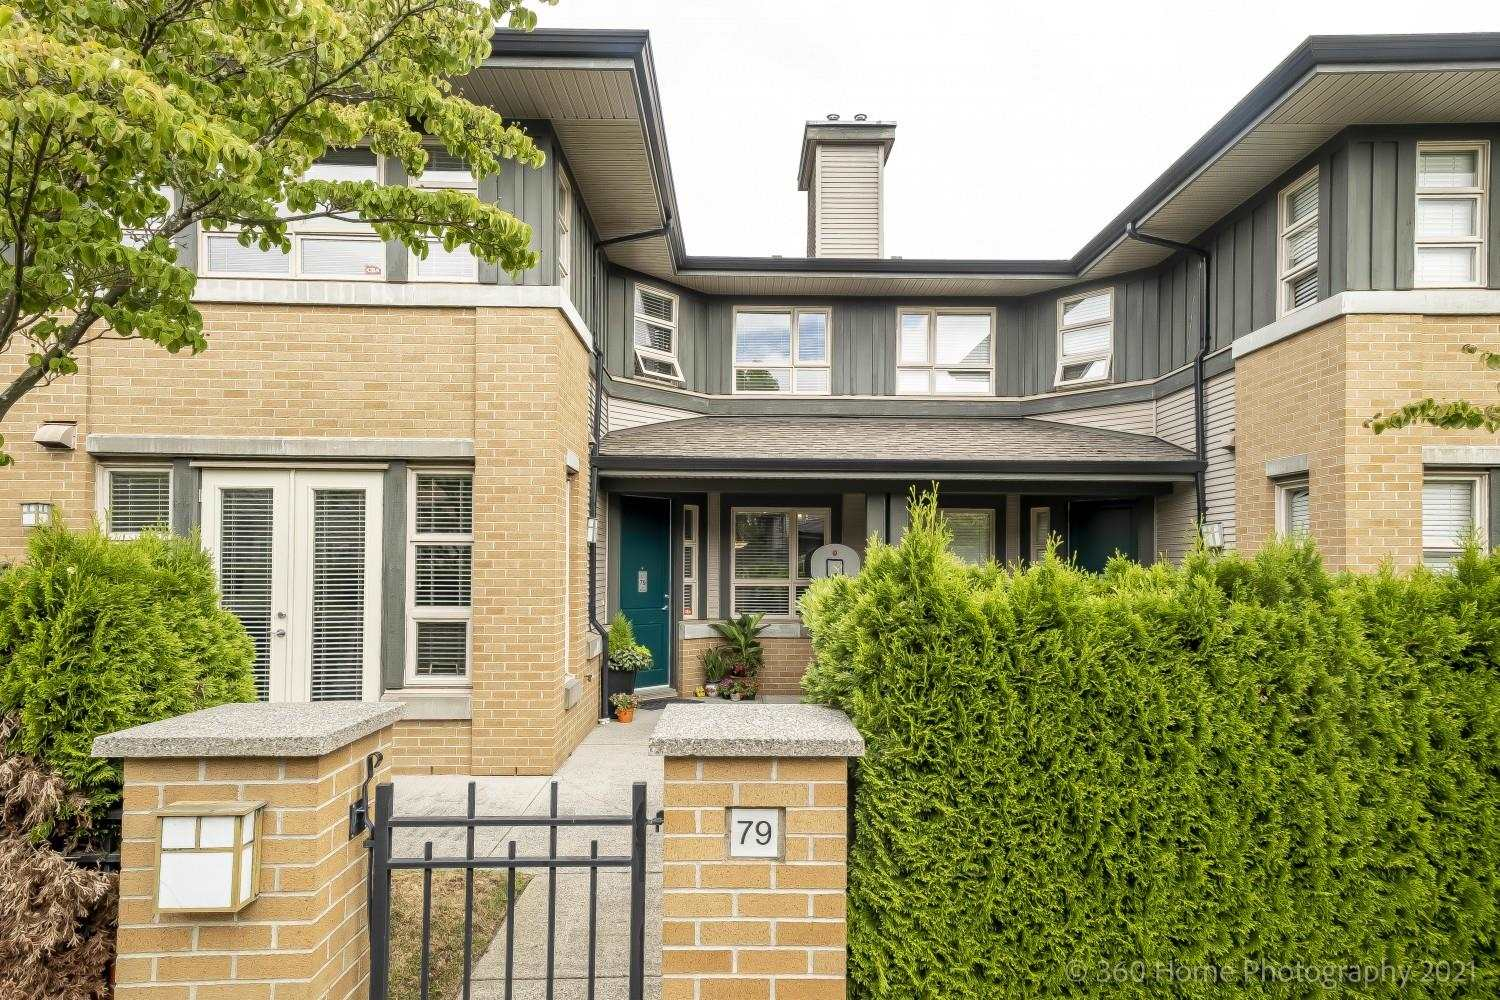 79 6300 BIRCH STREET - McLennan North Townhouse for sale, 3 Bedrooms (R2603529)